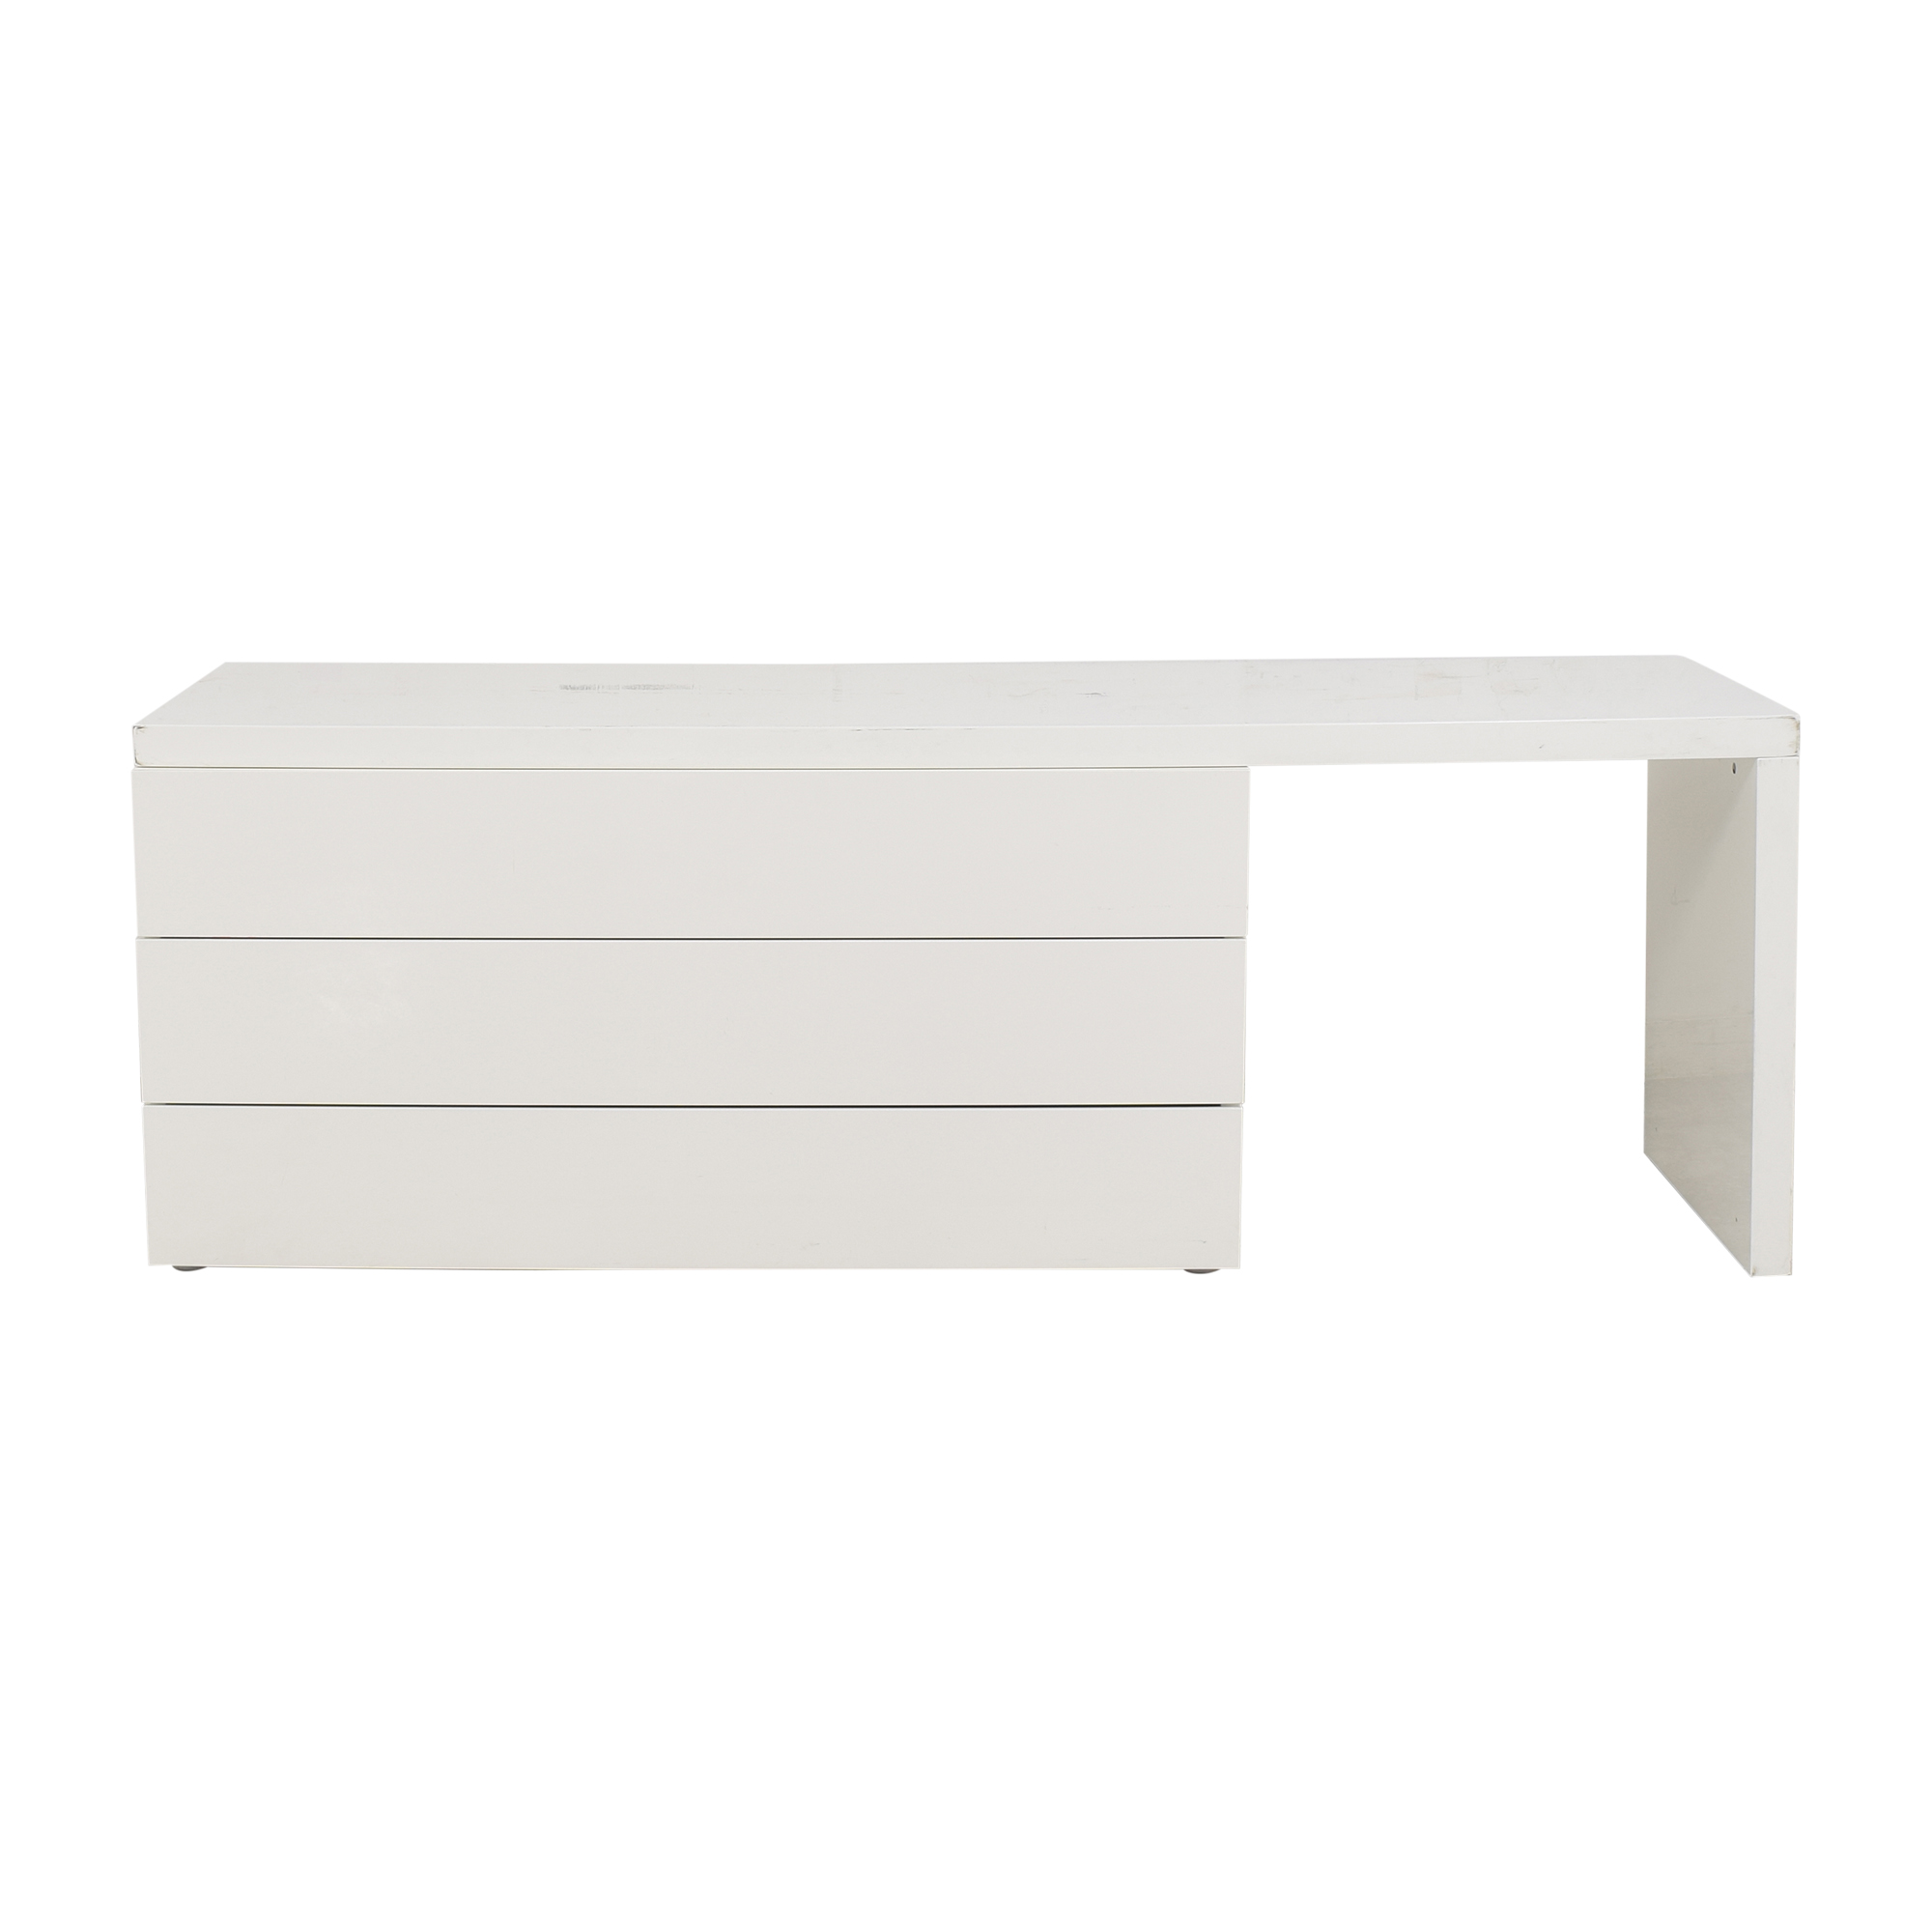 Poliform Poliform Dream Table and Drawers on sale